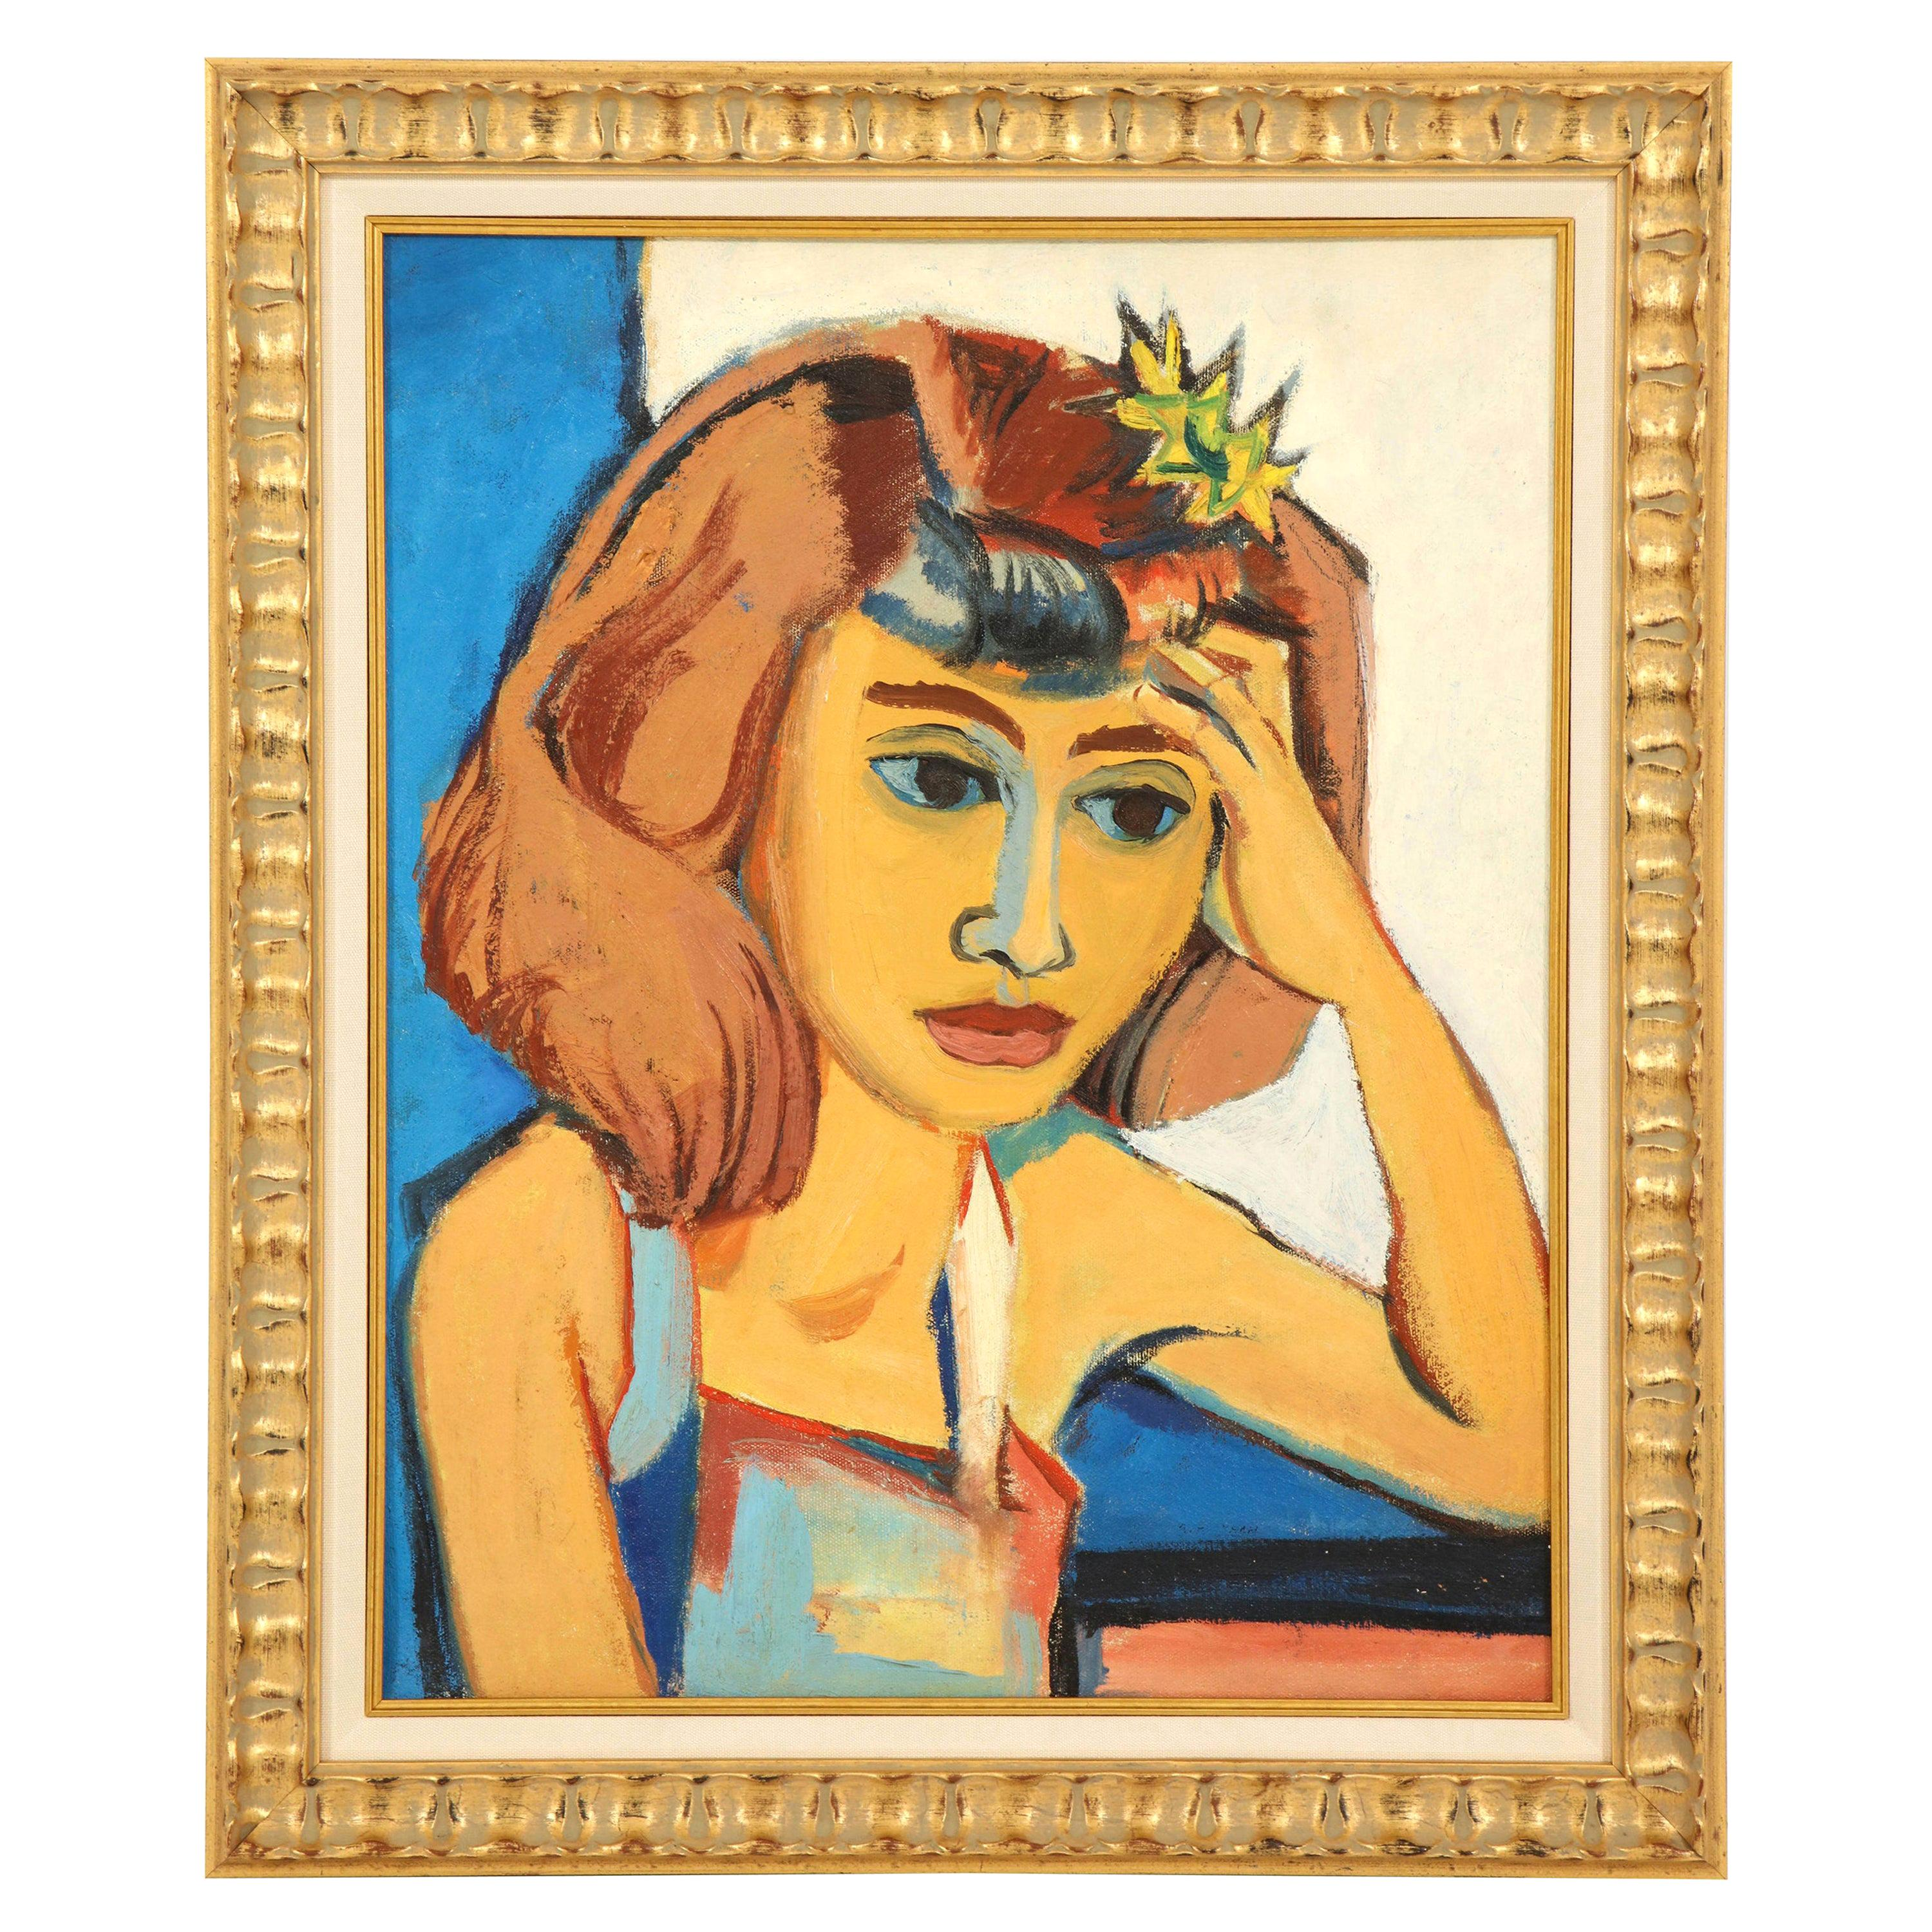 Painting from the 1940s, Midcentury Art, Golden, Blue, Chocolate & White